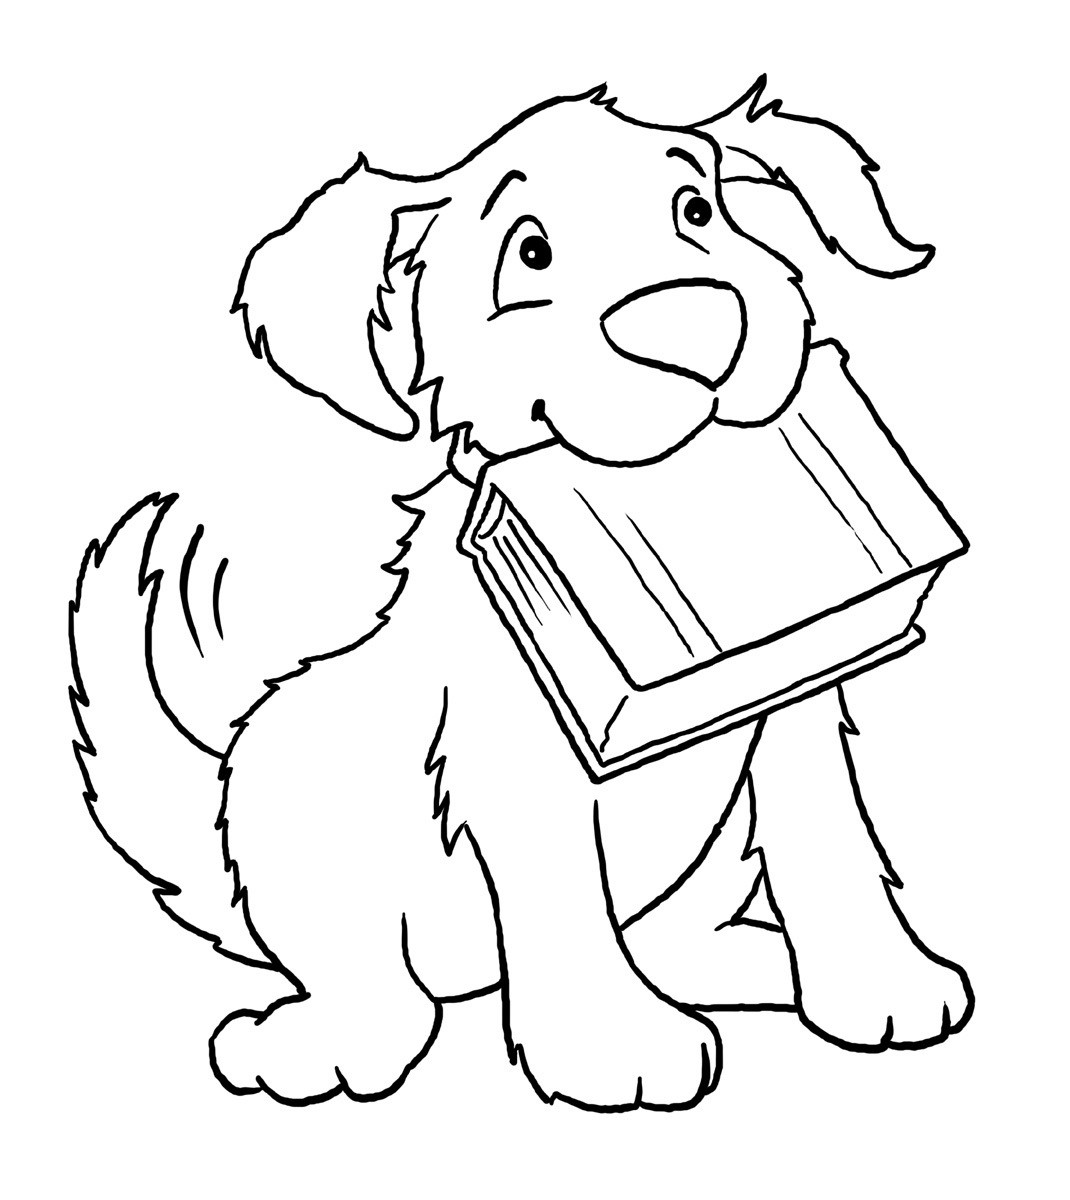 Best ideas about Dog Free Coloring Pages . Save or Pin Free Printable Dog Coloring Pages For Kids Now.